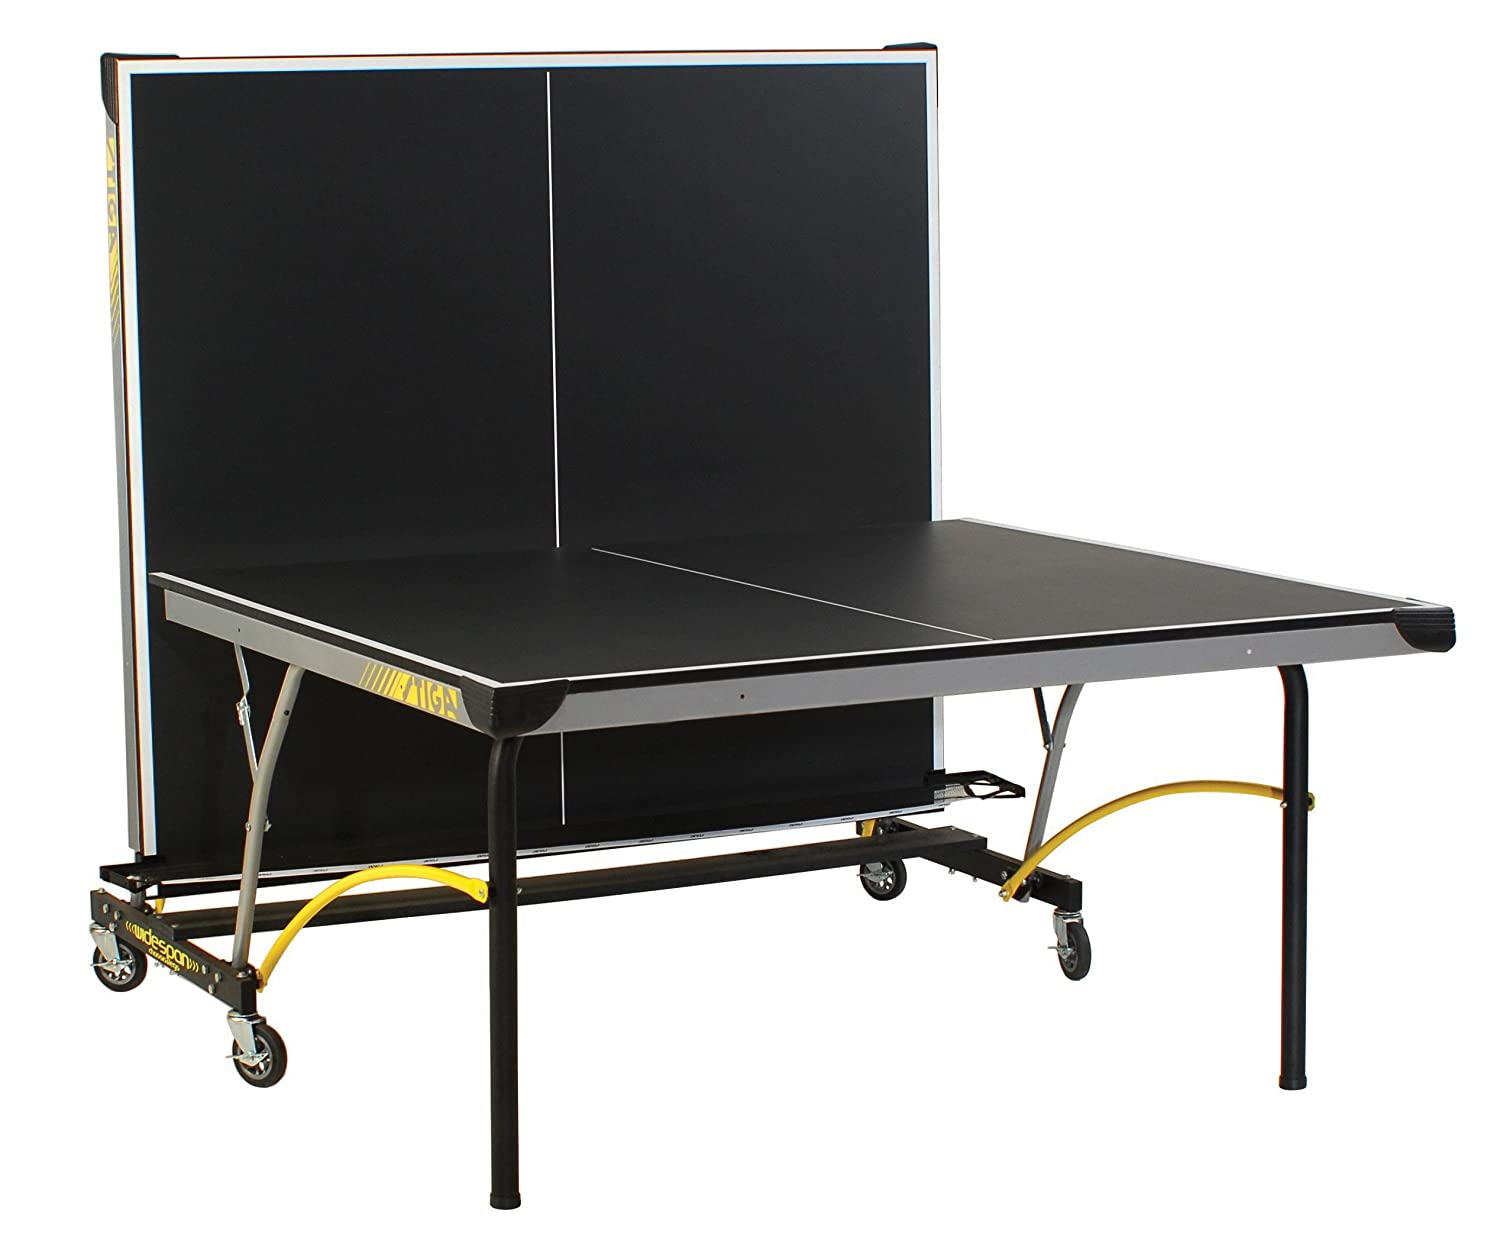 Awesome Amazon.com : STIGA Synergy Table Tennis Table : Ping Pong Table : Sports U0026  Outdoors